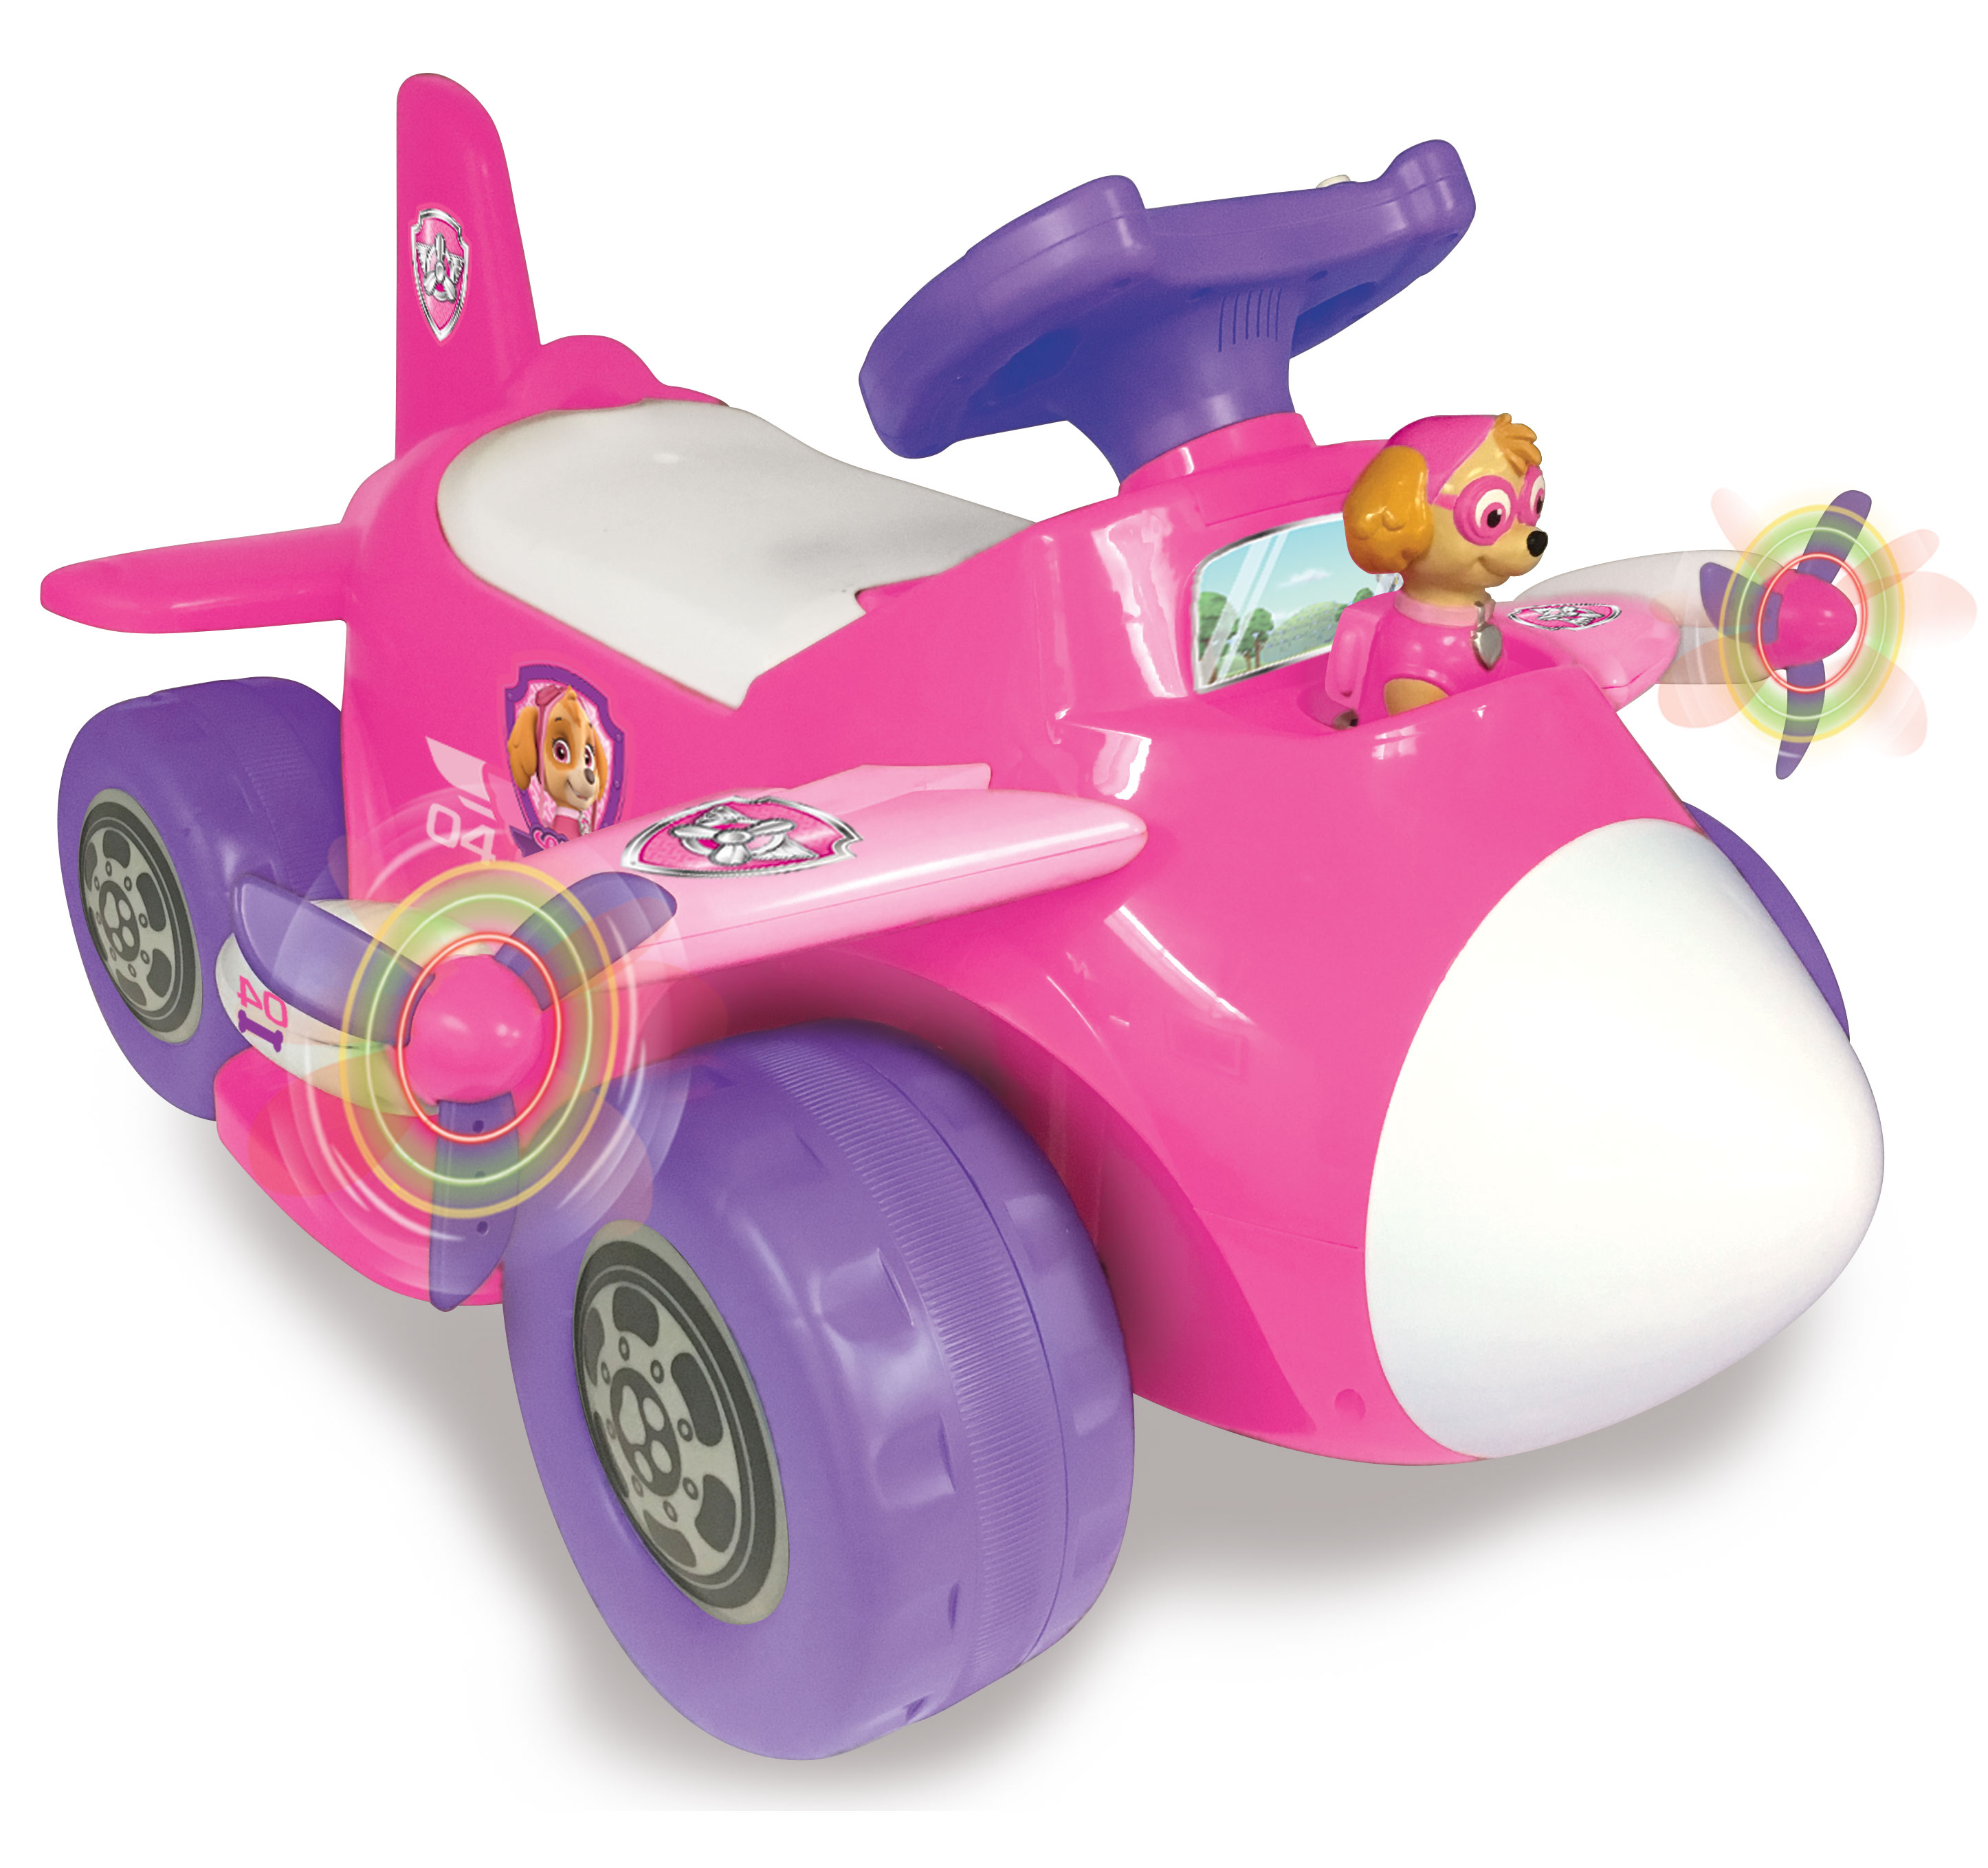 Nickelodeon Paw Patrol Skye 6- Volt Powered Plane Ride On